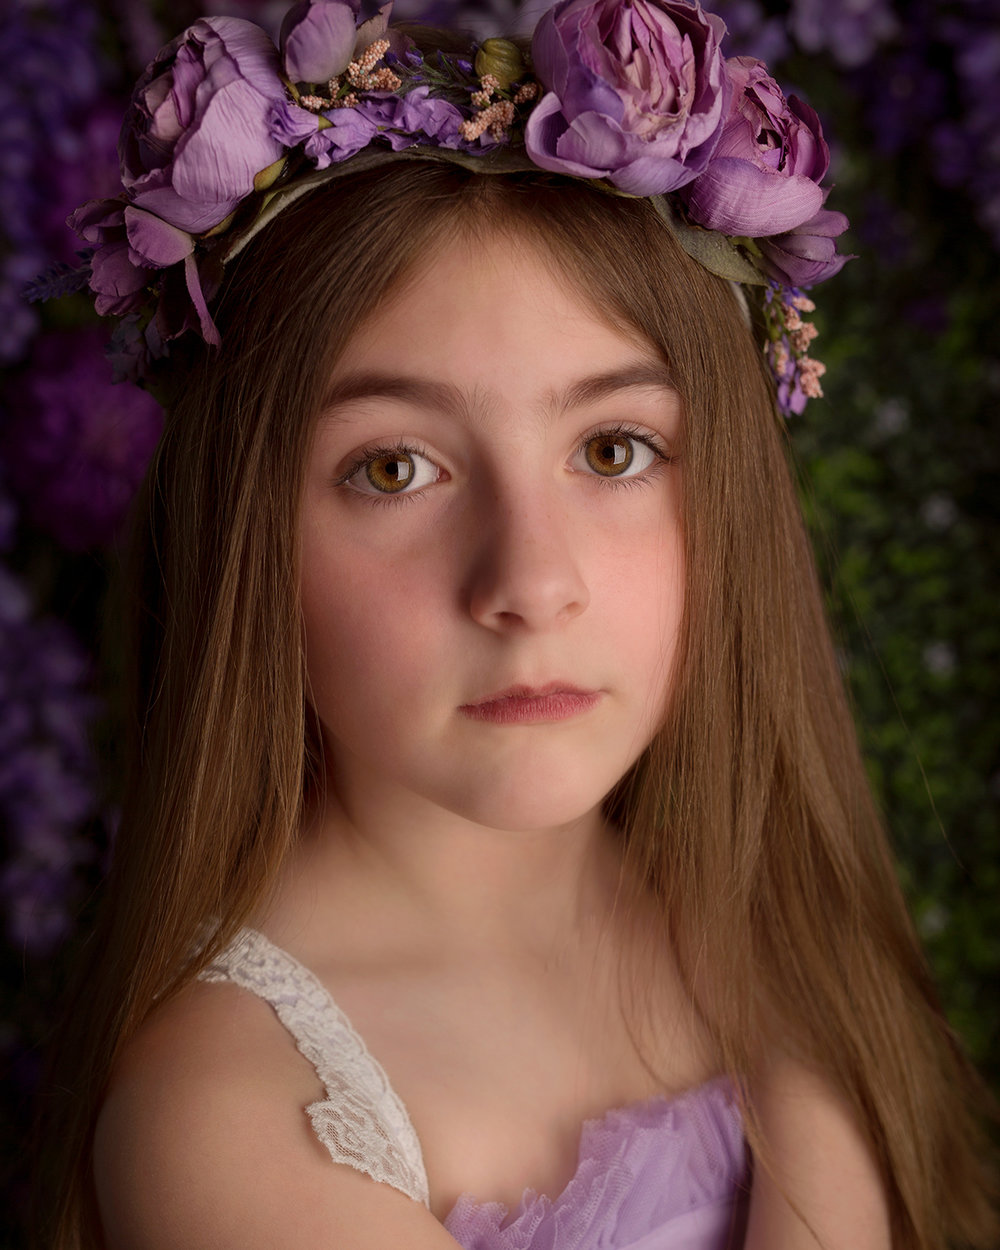 abby with purple flower crown sRGB.jpg